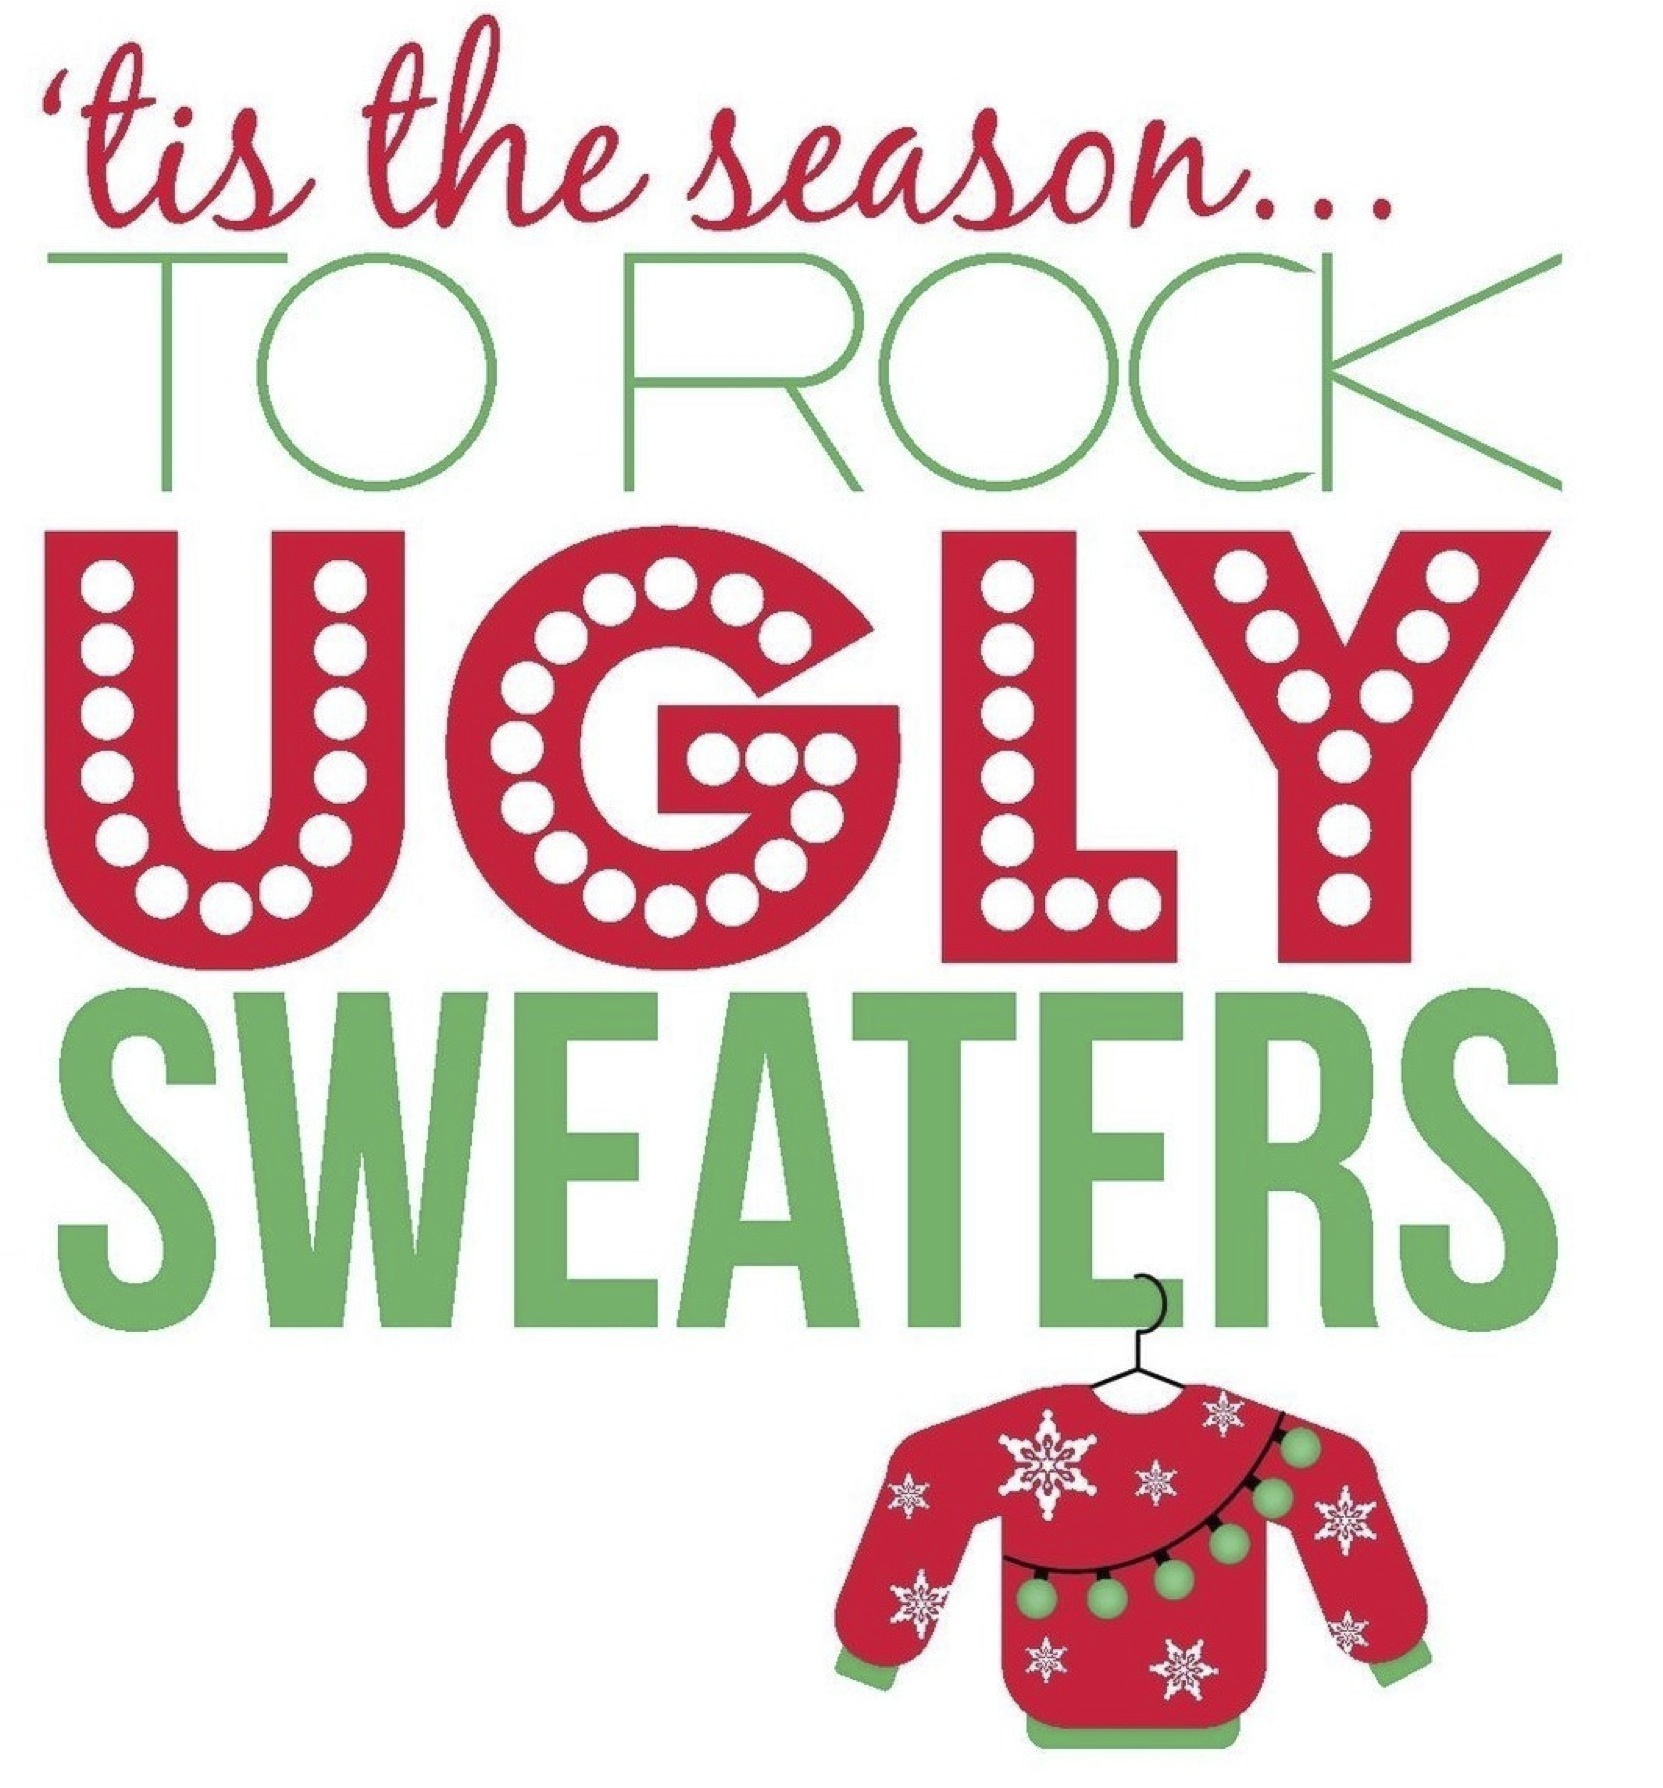 10031a323 Events Calendar - A Holiday Affair - Ugly Christmas Sweater...